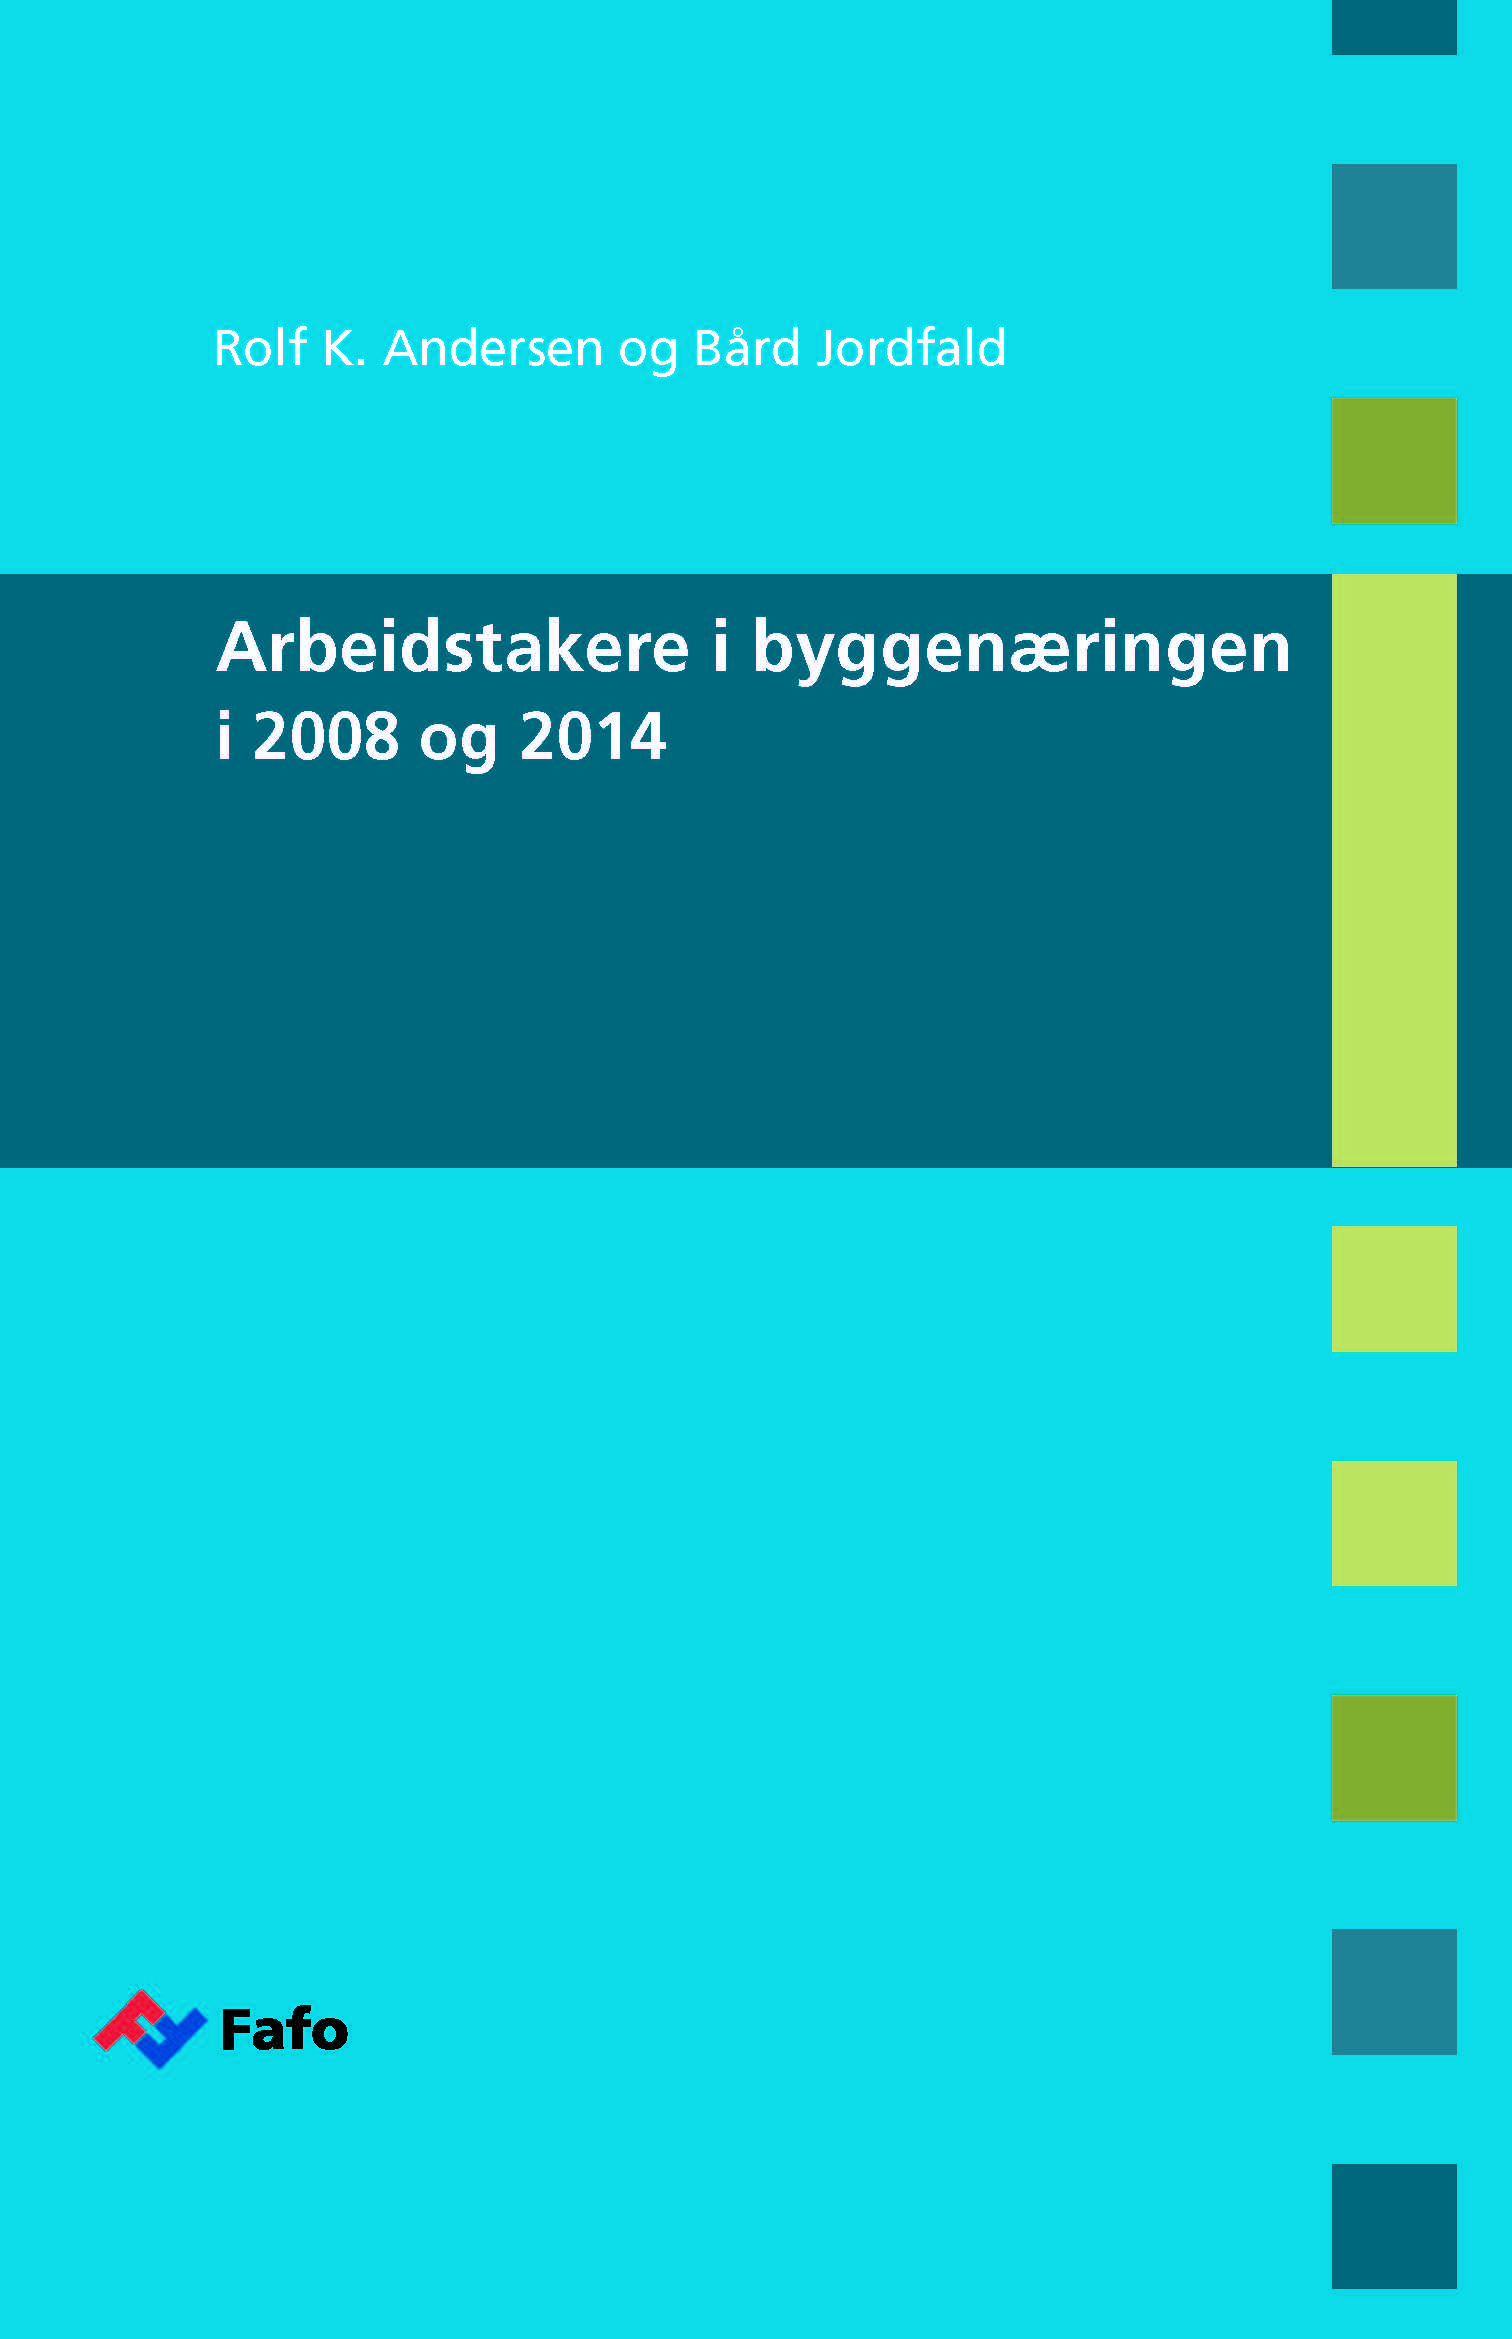 Labour force in the construction industry in Norway, from to 2008 to 2014